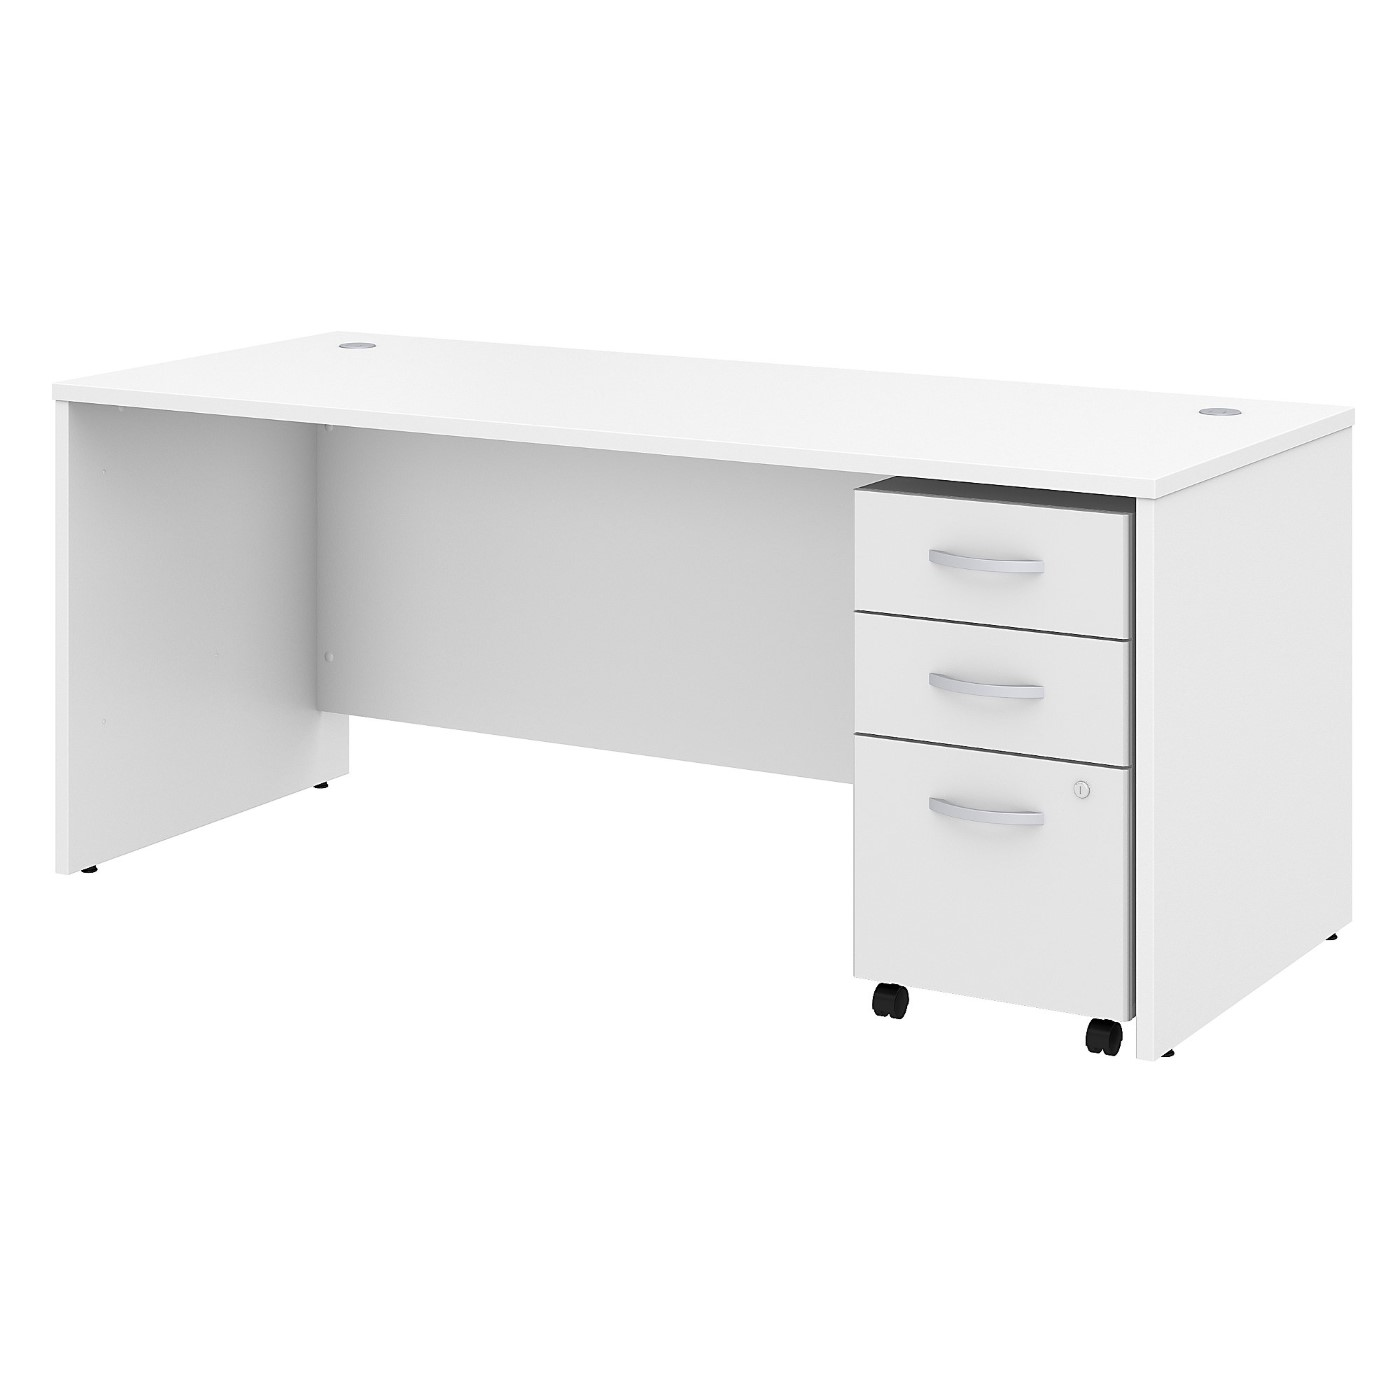 BUSH BUSINESS FURNITURE STUDIO C 72W X 30D OFFICE DESK WITH MOBILE FILE CABINET. FREE SHIPPING